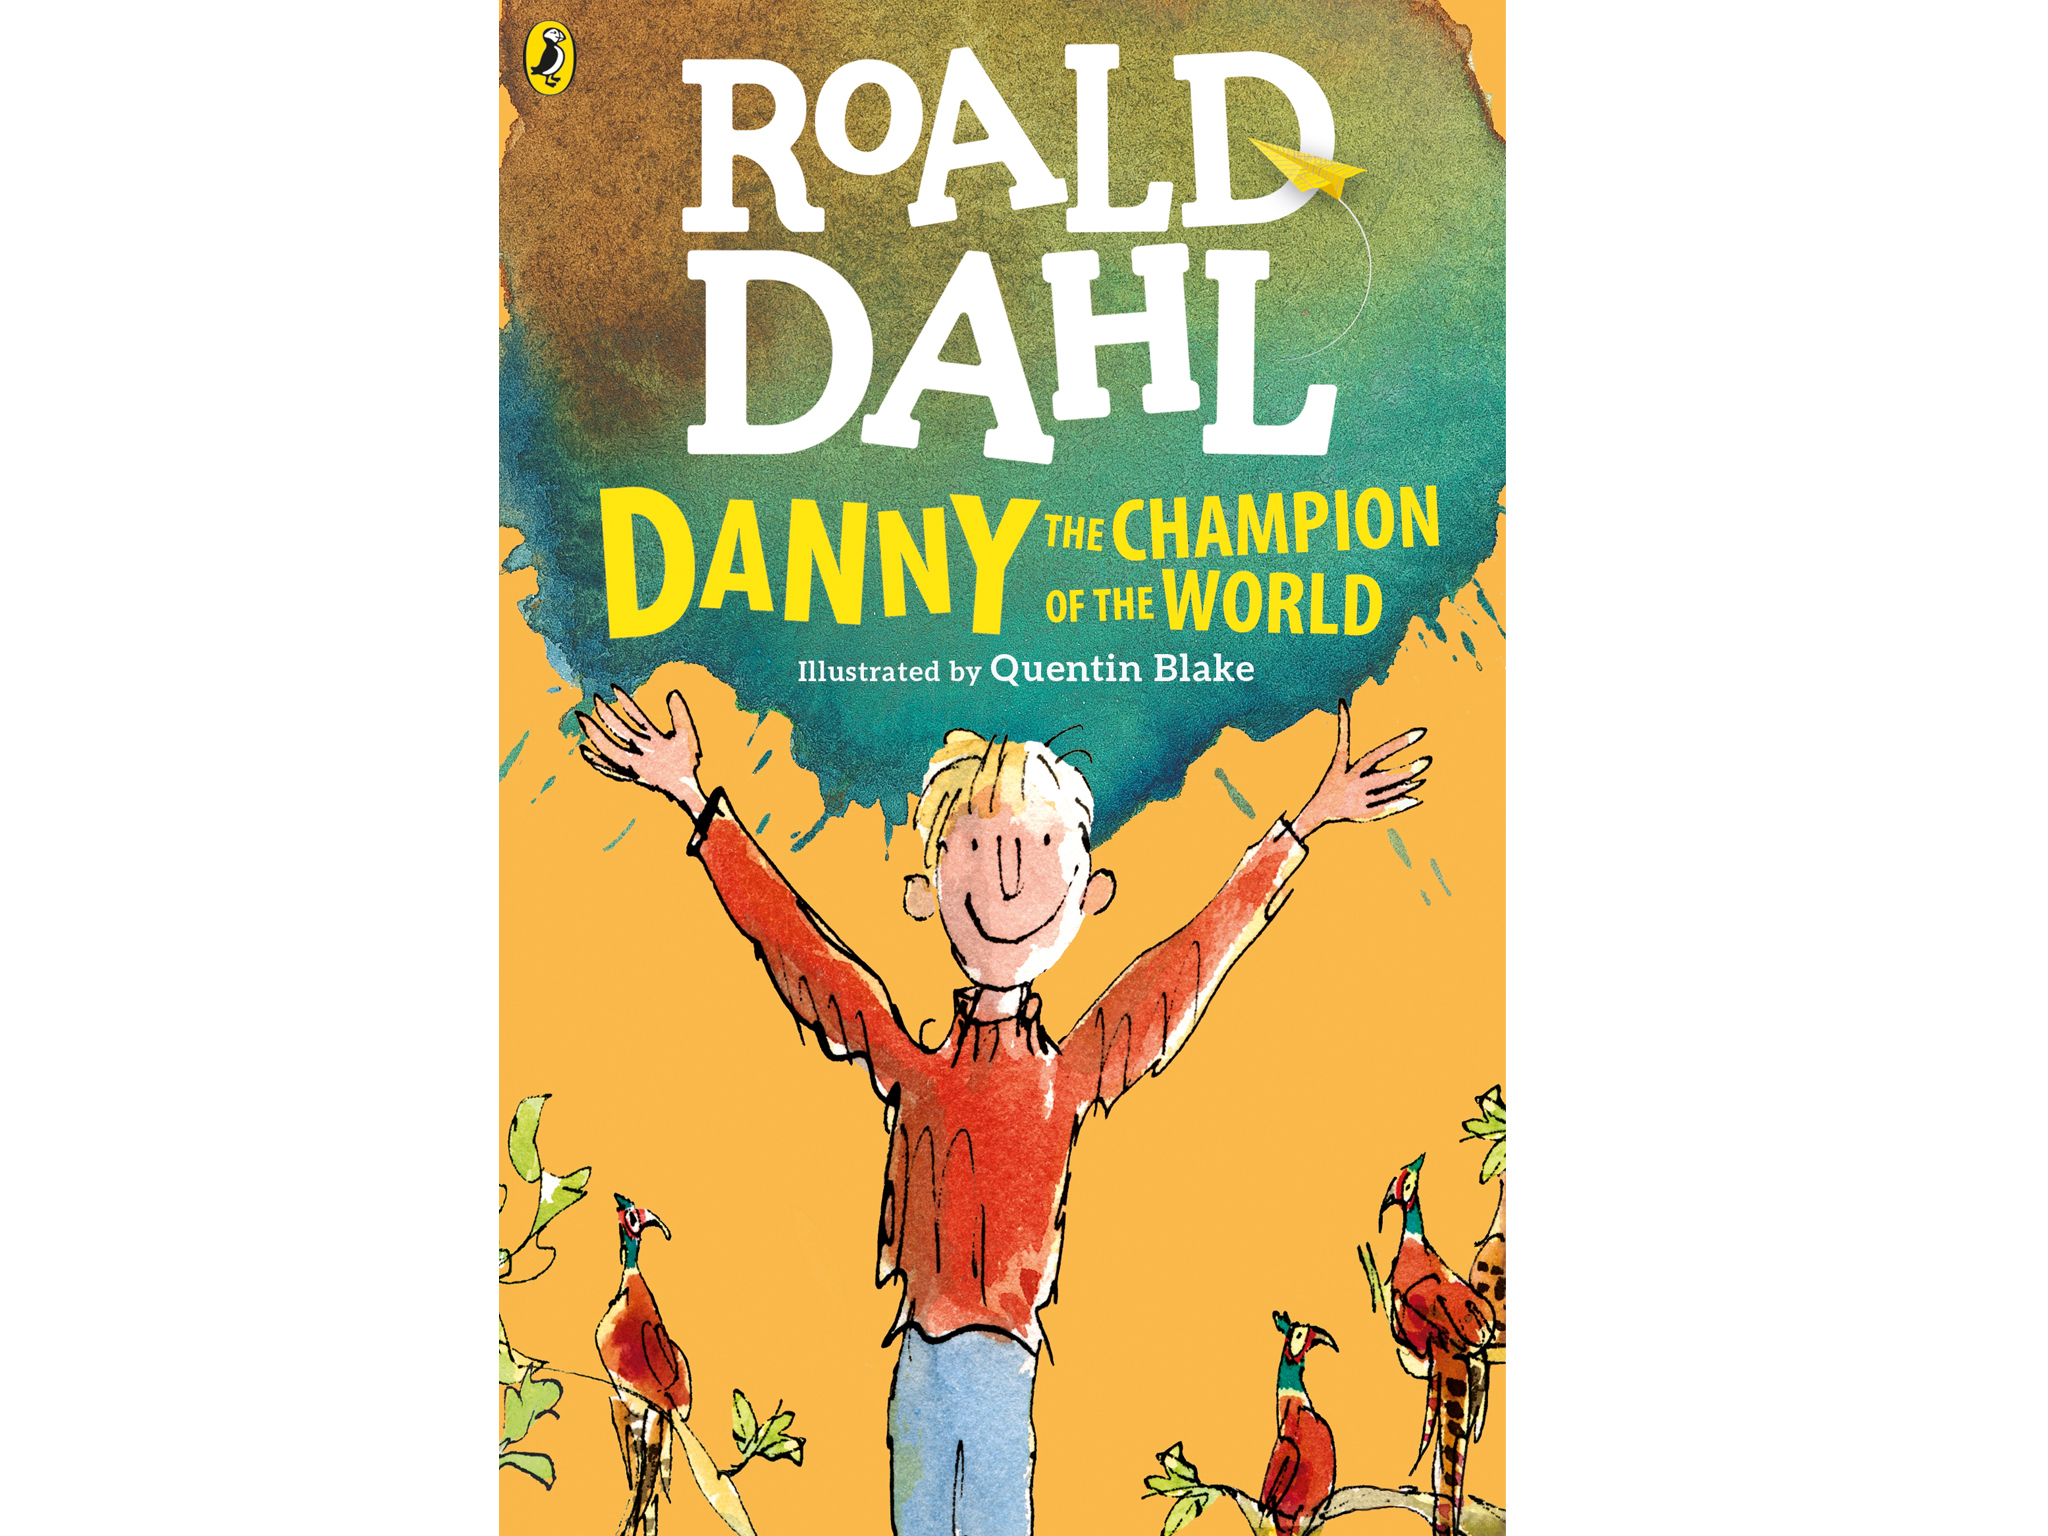 100 best children's books: Danny Champion of the World